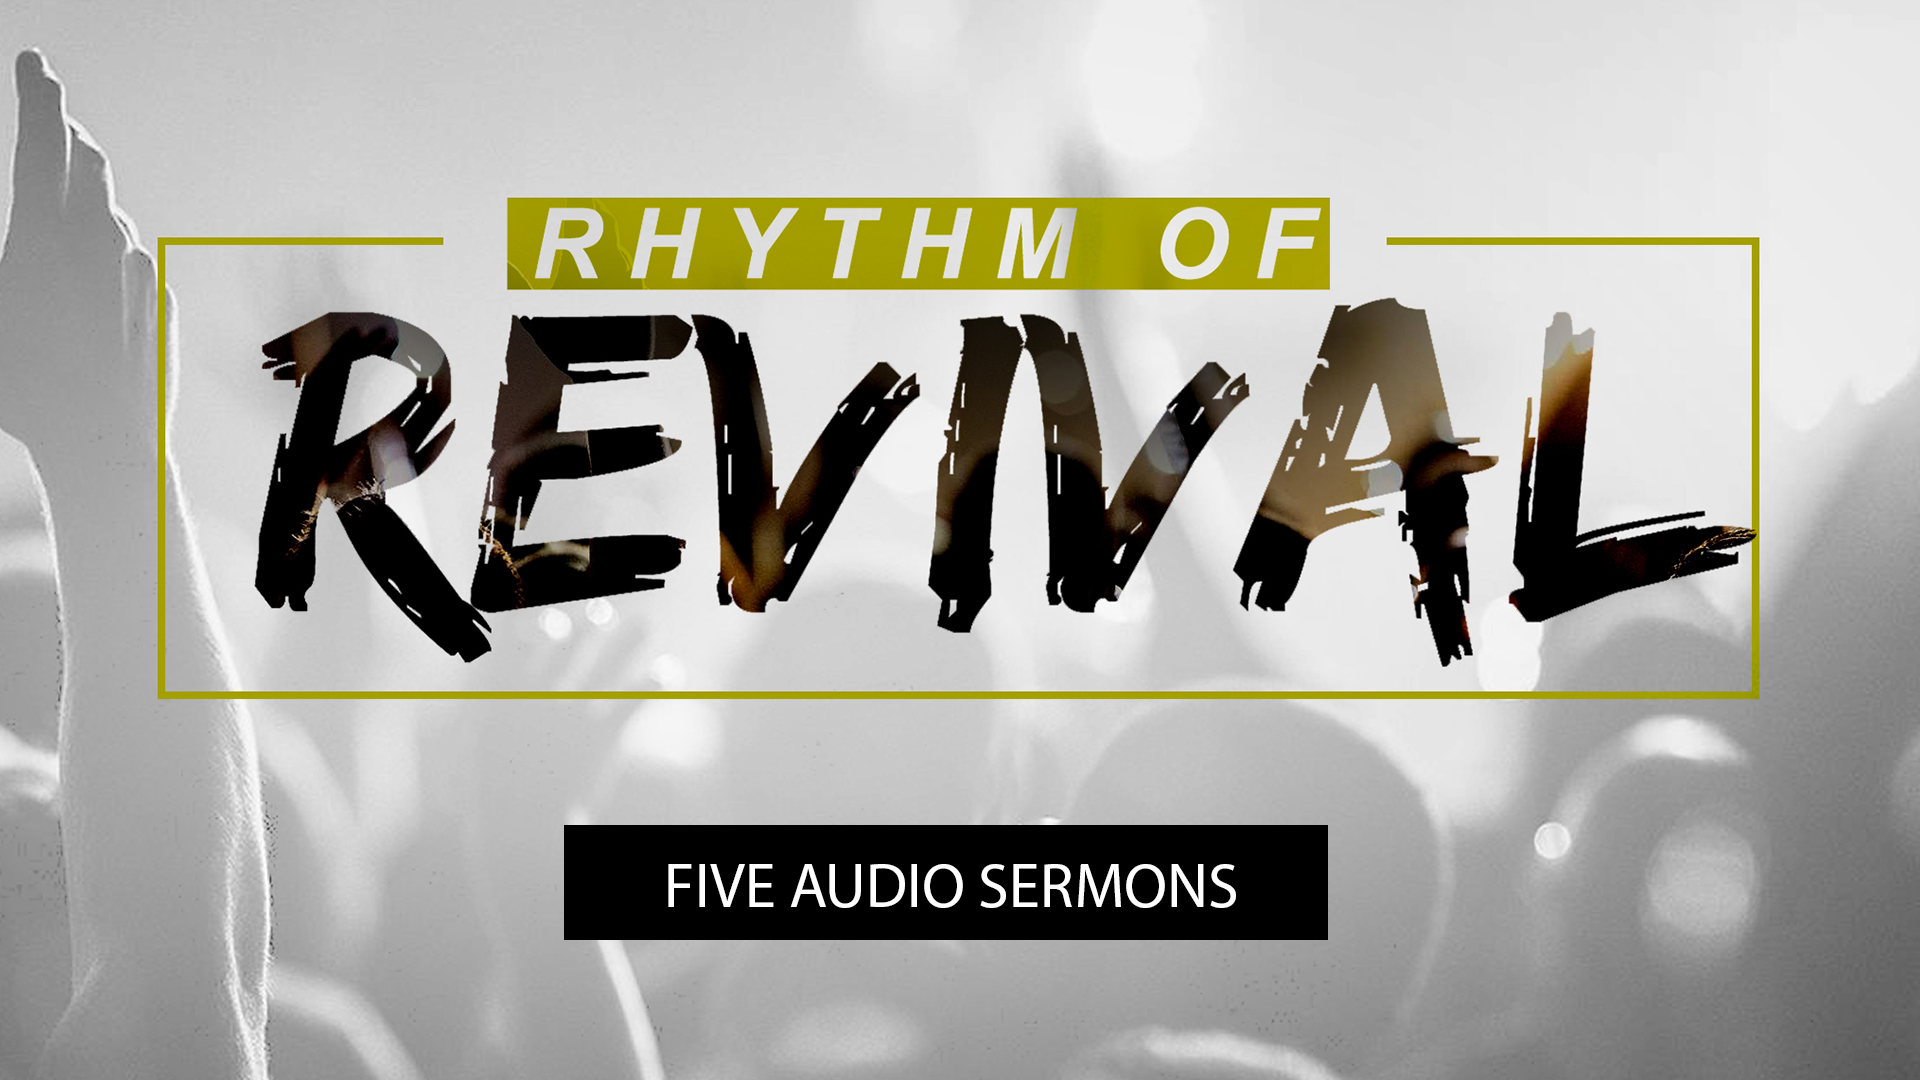 https://vladimirsavchuk.com/resources/rhythm-of-revival-audio-series/